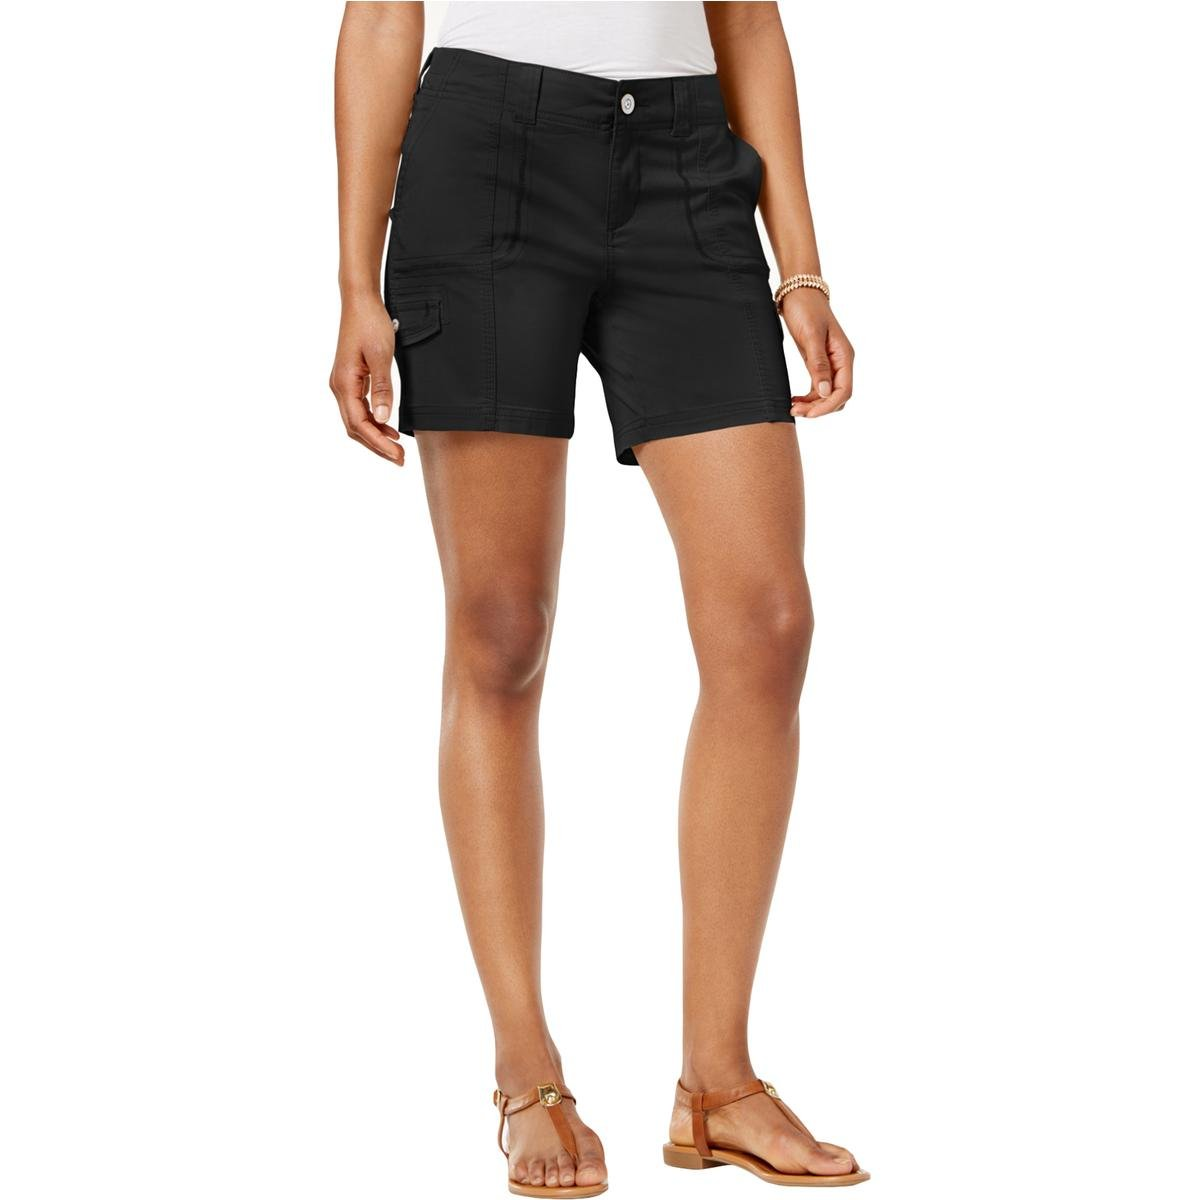 Style & Co.. Womens Petites Comfort Waist Mid Rise Cargo Shorts Black 12P